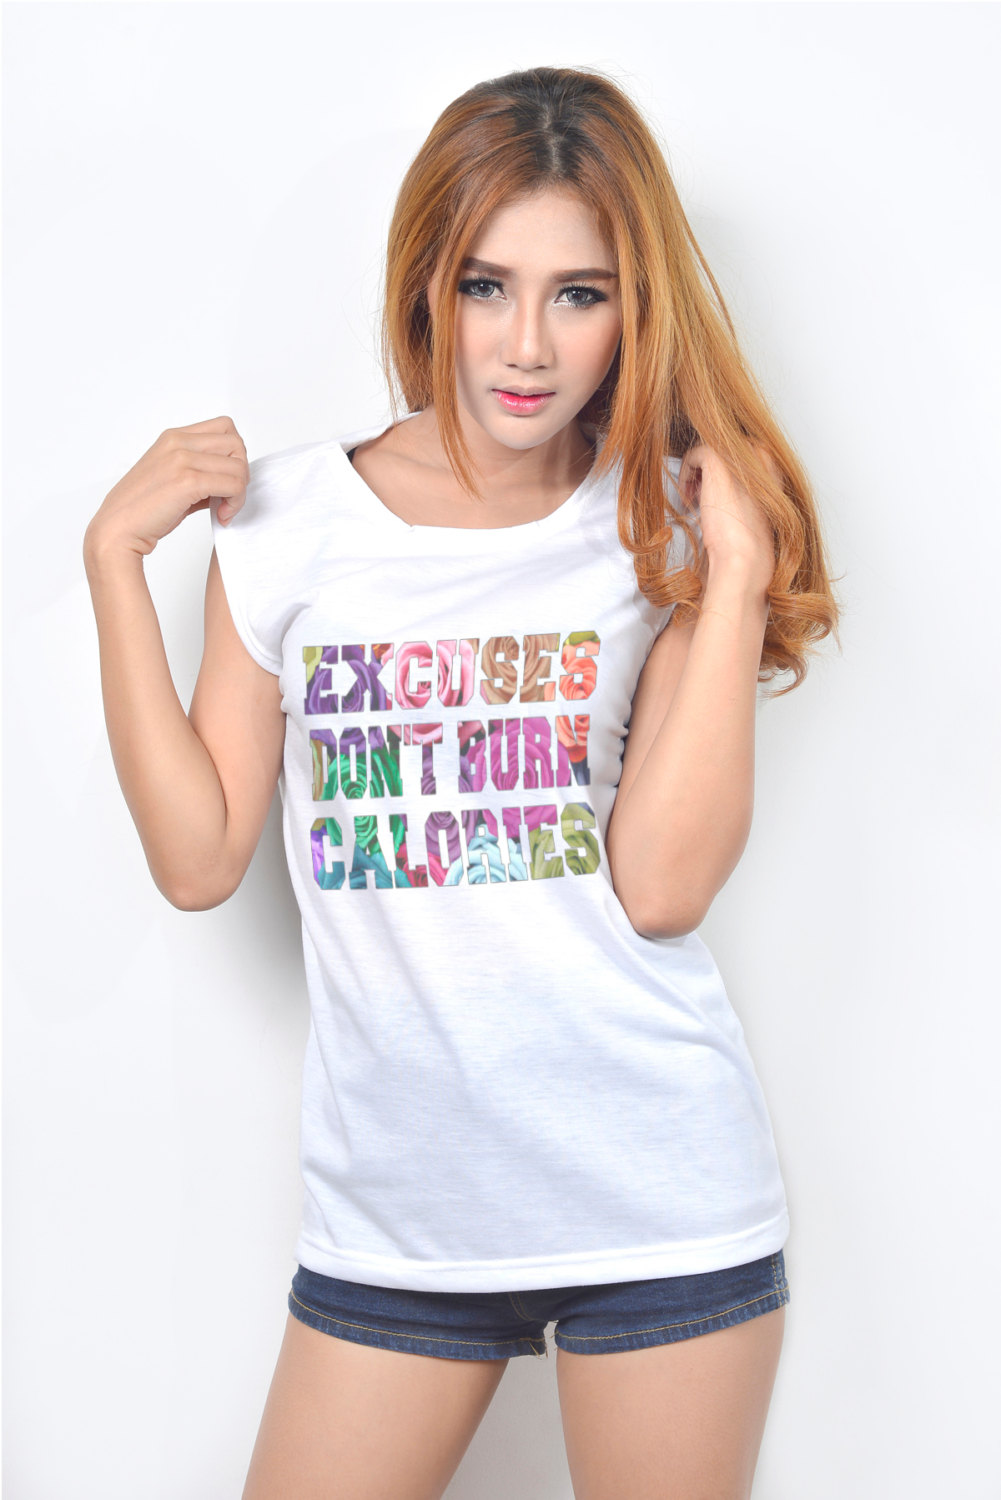 Excuses Don't Burn Calories Exercise Gym Workout Women Tank Top Sleeveless T Shirt